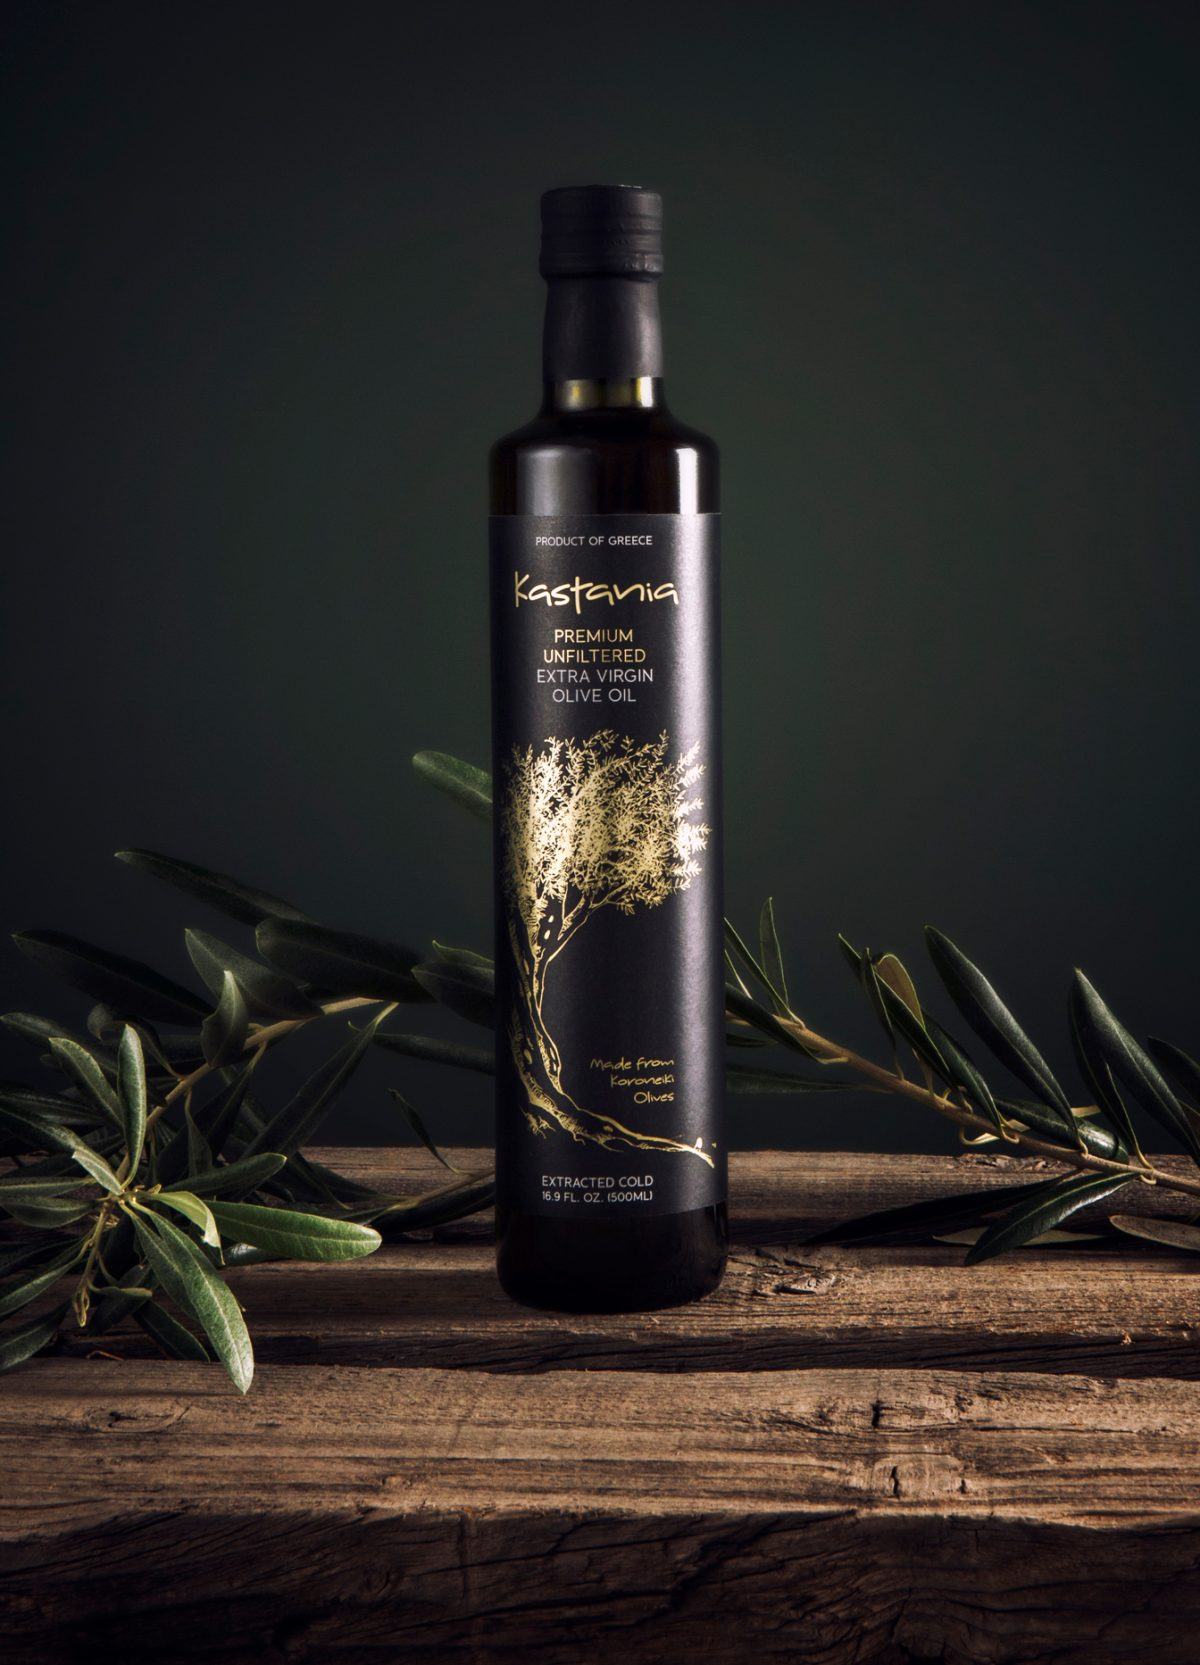 Photo of black and gold 500ml bottle of Kastania centered on wooden table on dark background